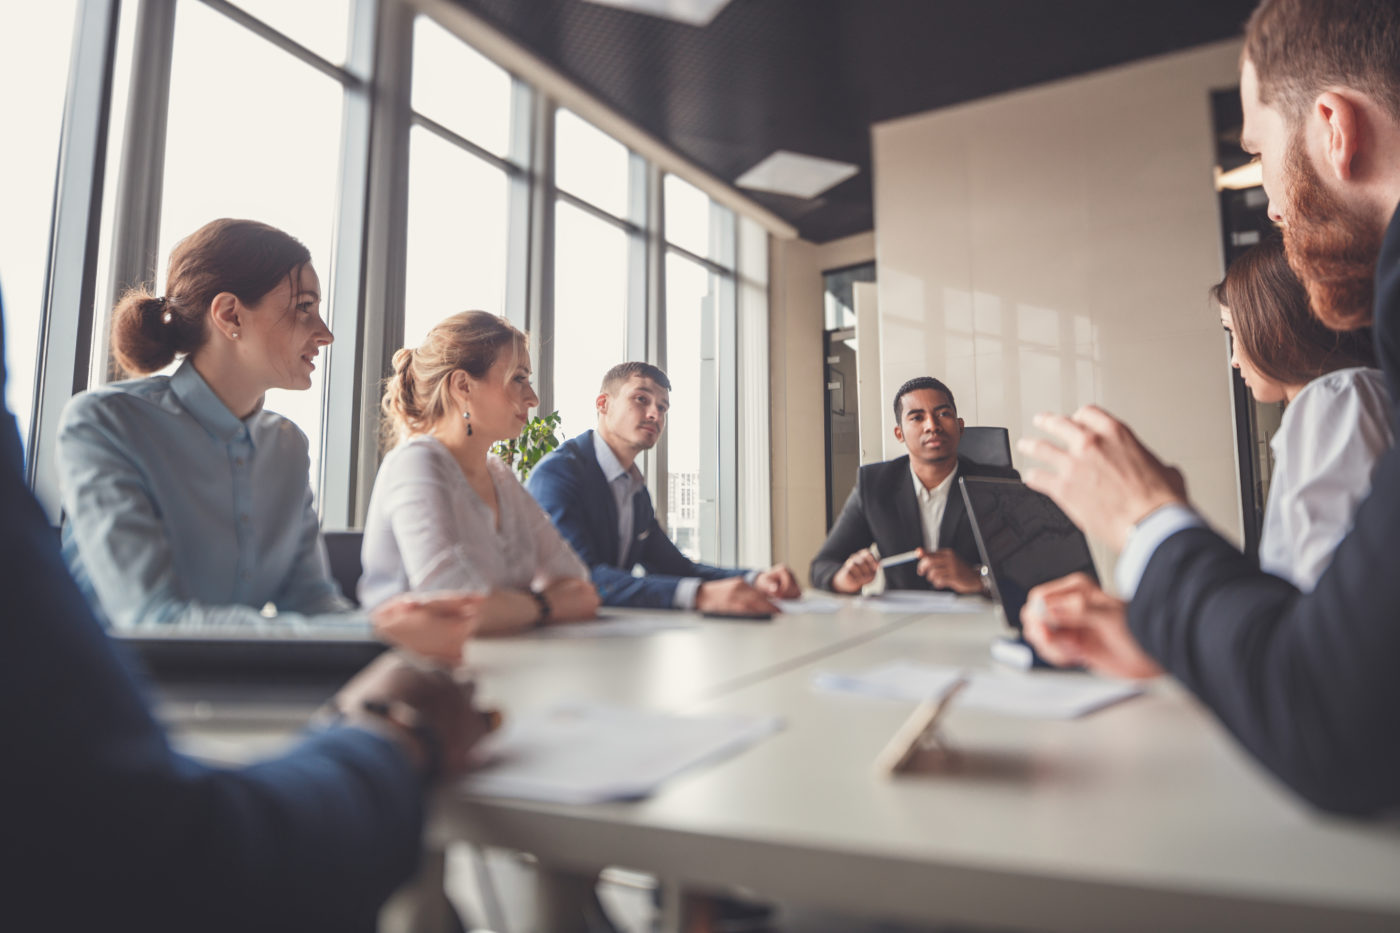 Group of executives have a meeting around a table talking about finding a facilitator